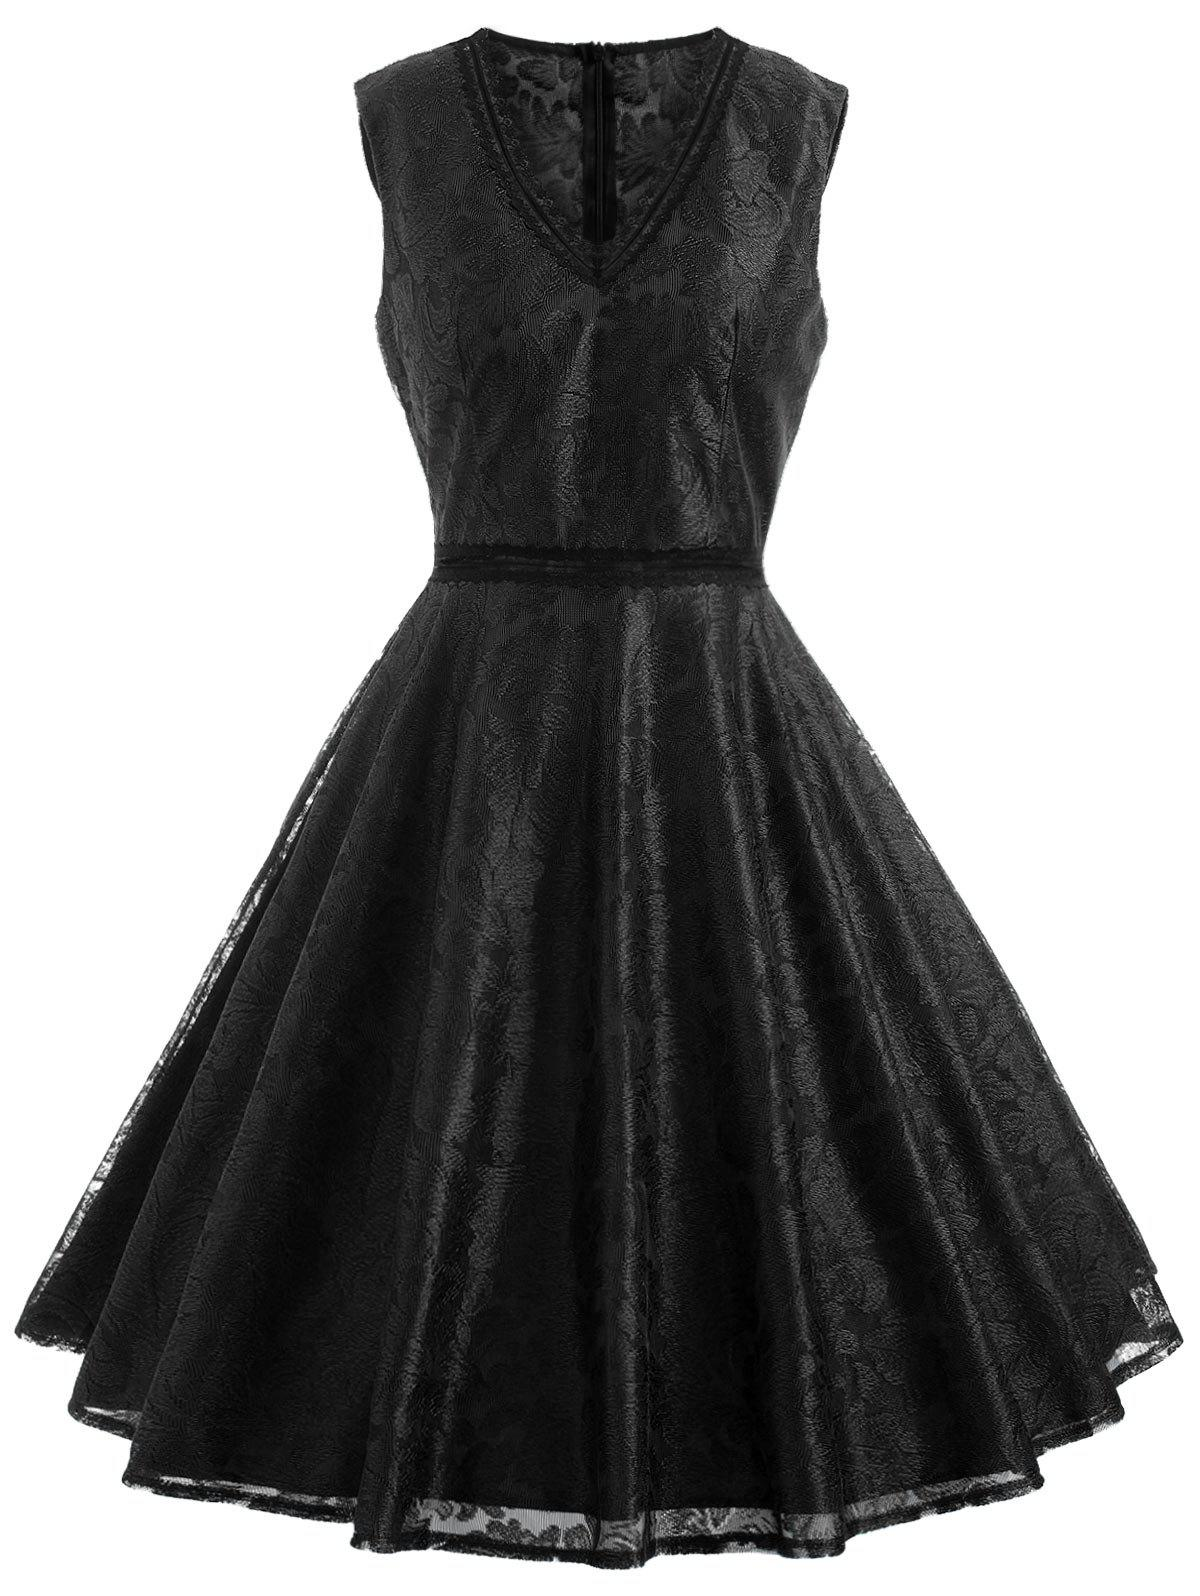 Sleeveless Leaf Lace Dress - BLACK XL